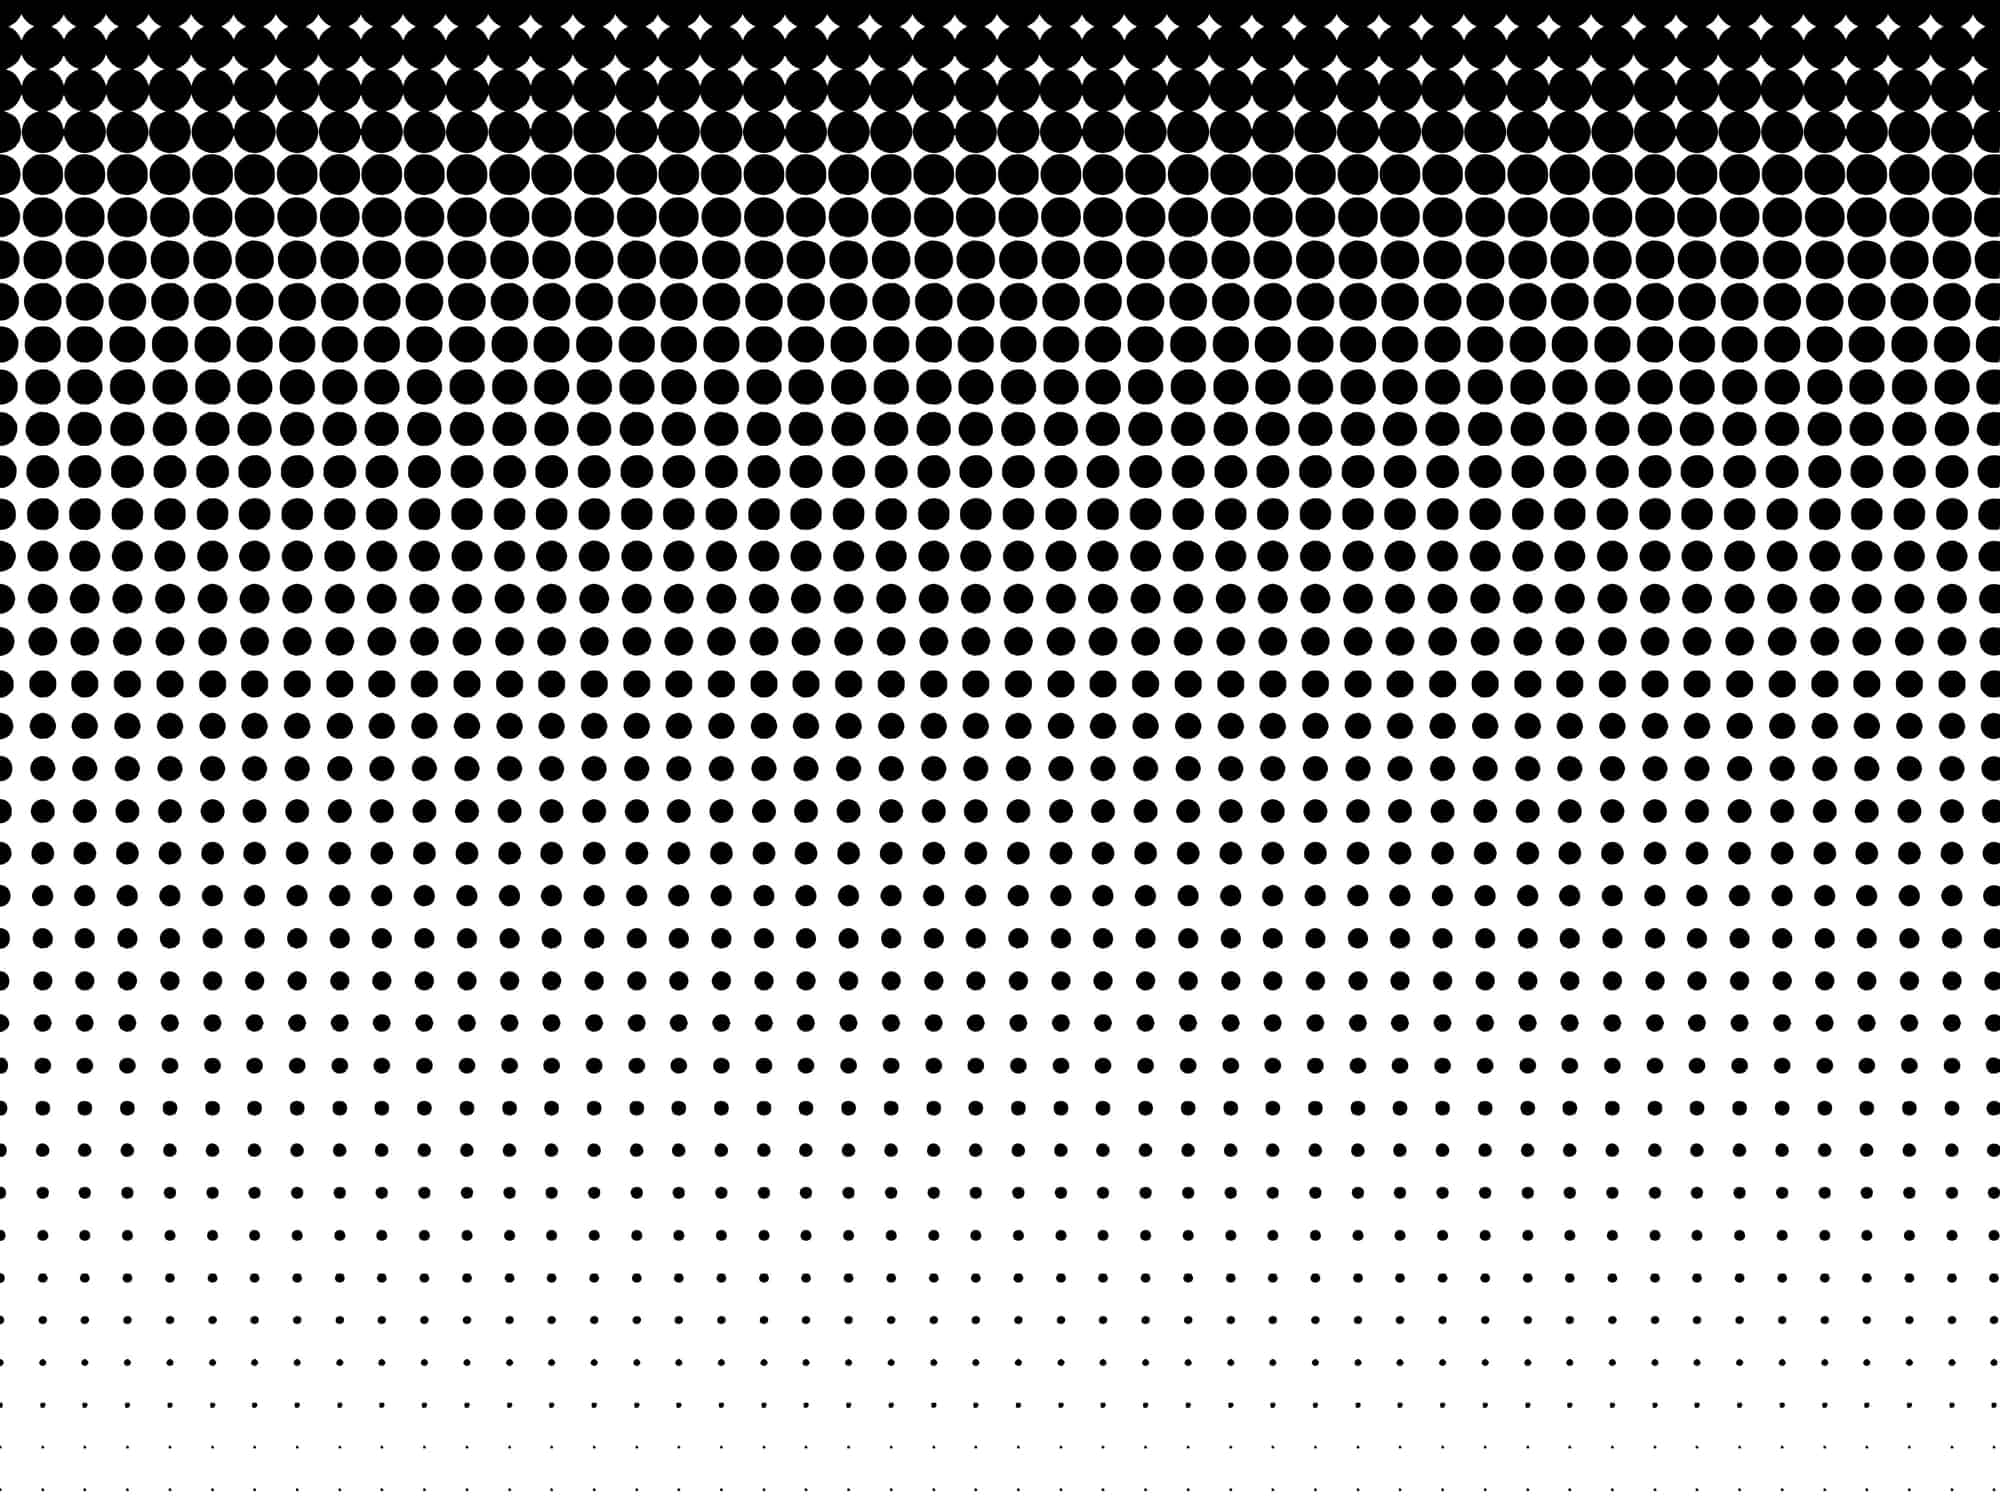 halftone explained in simple words